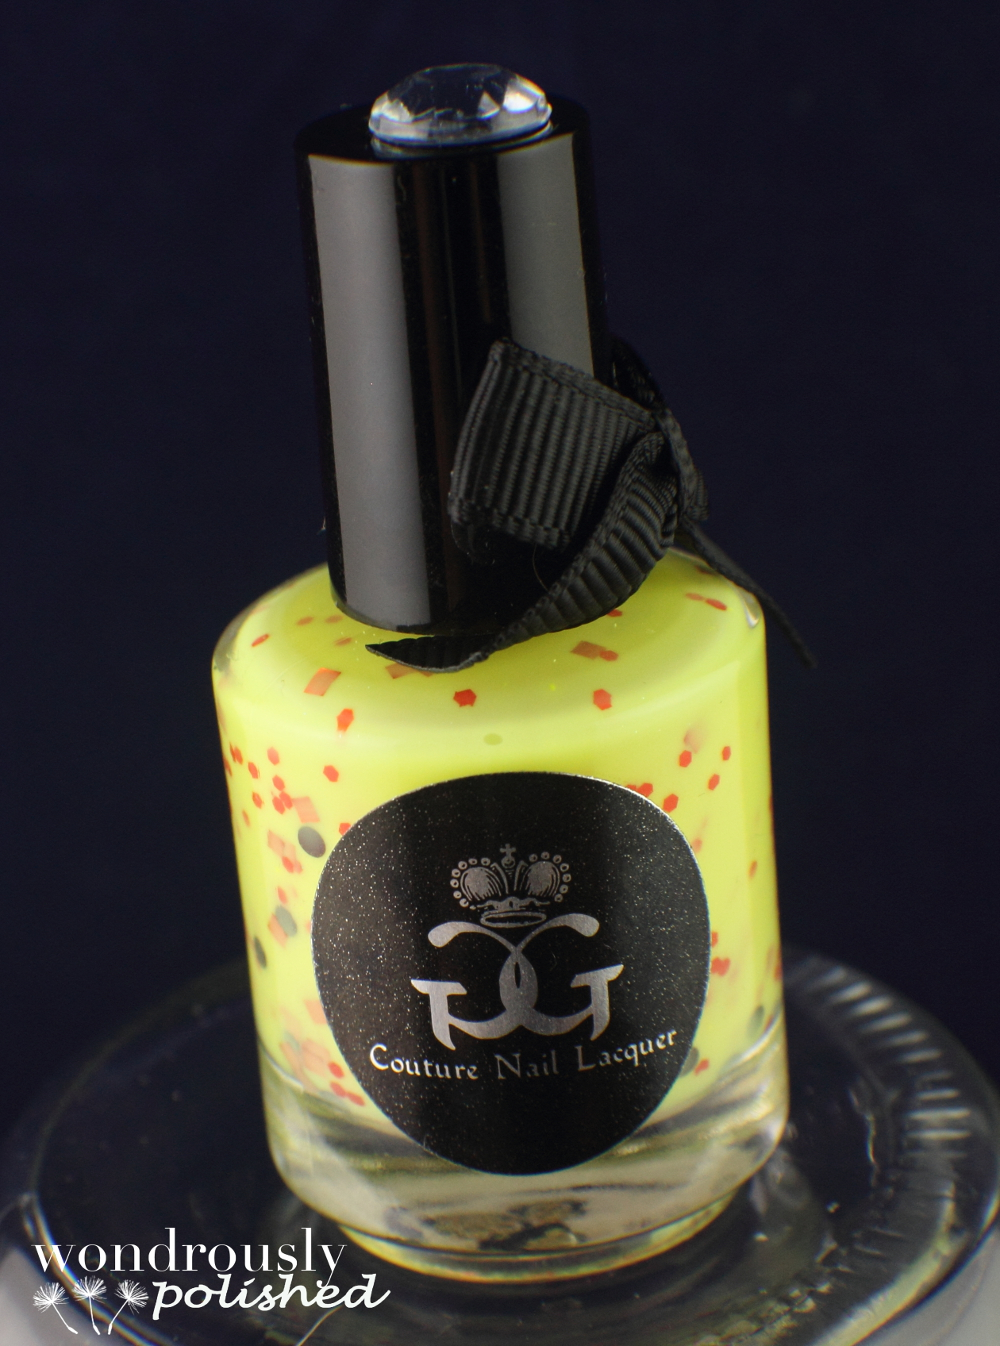 Wondrously Polished February Nail Art Challenge: Wondrously Polished: GG Couture Nail Lacquer Giveaway